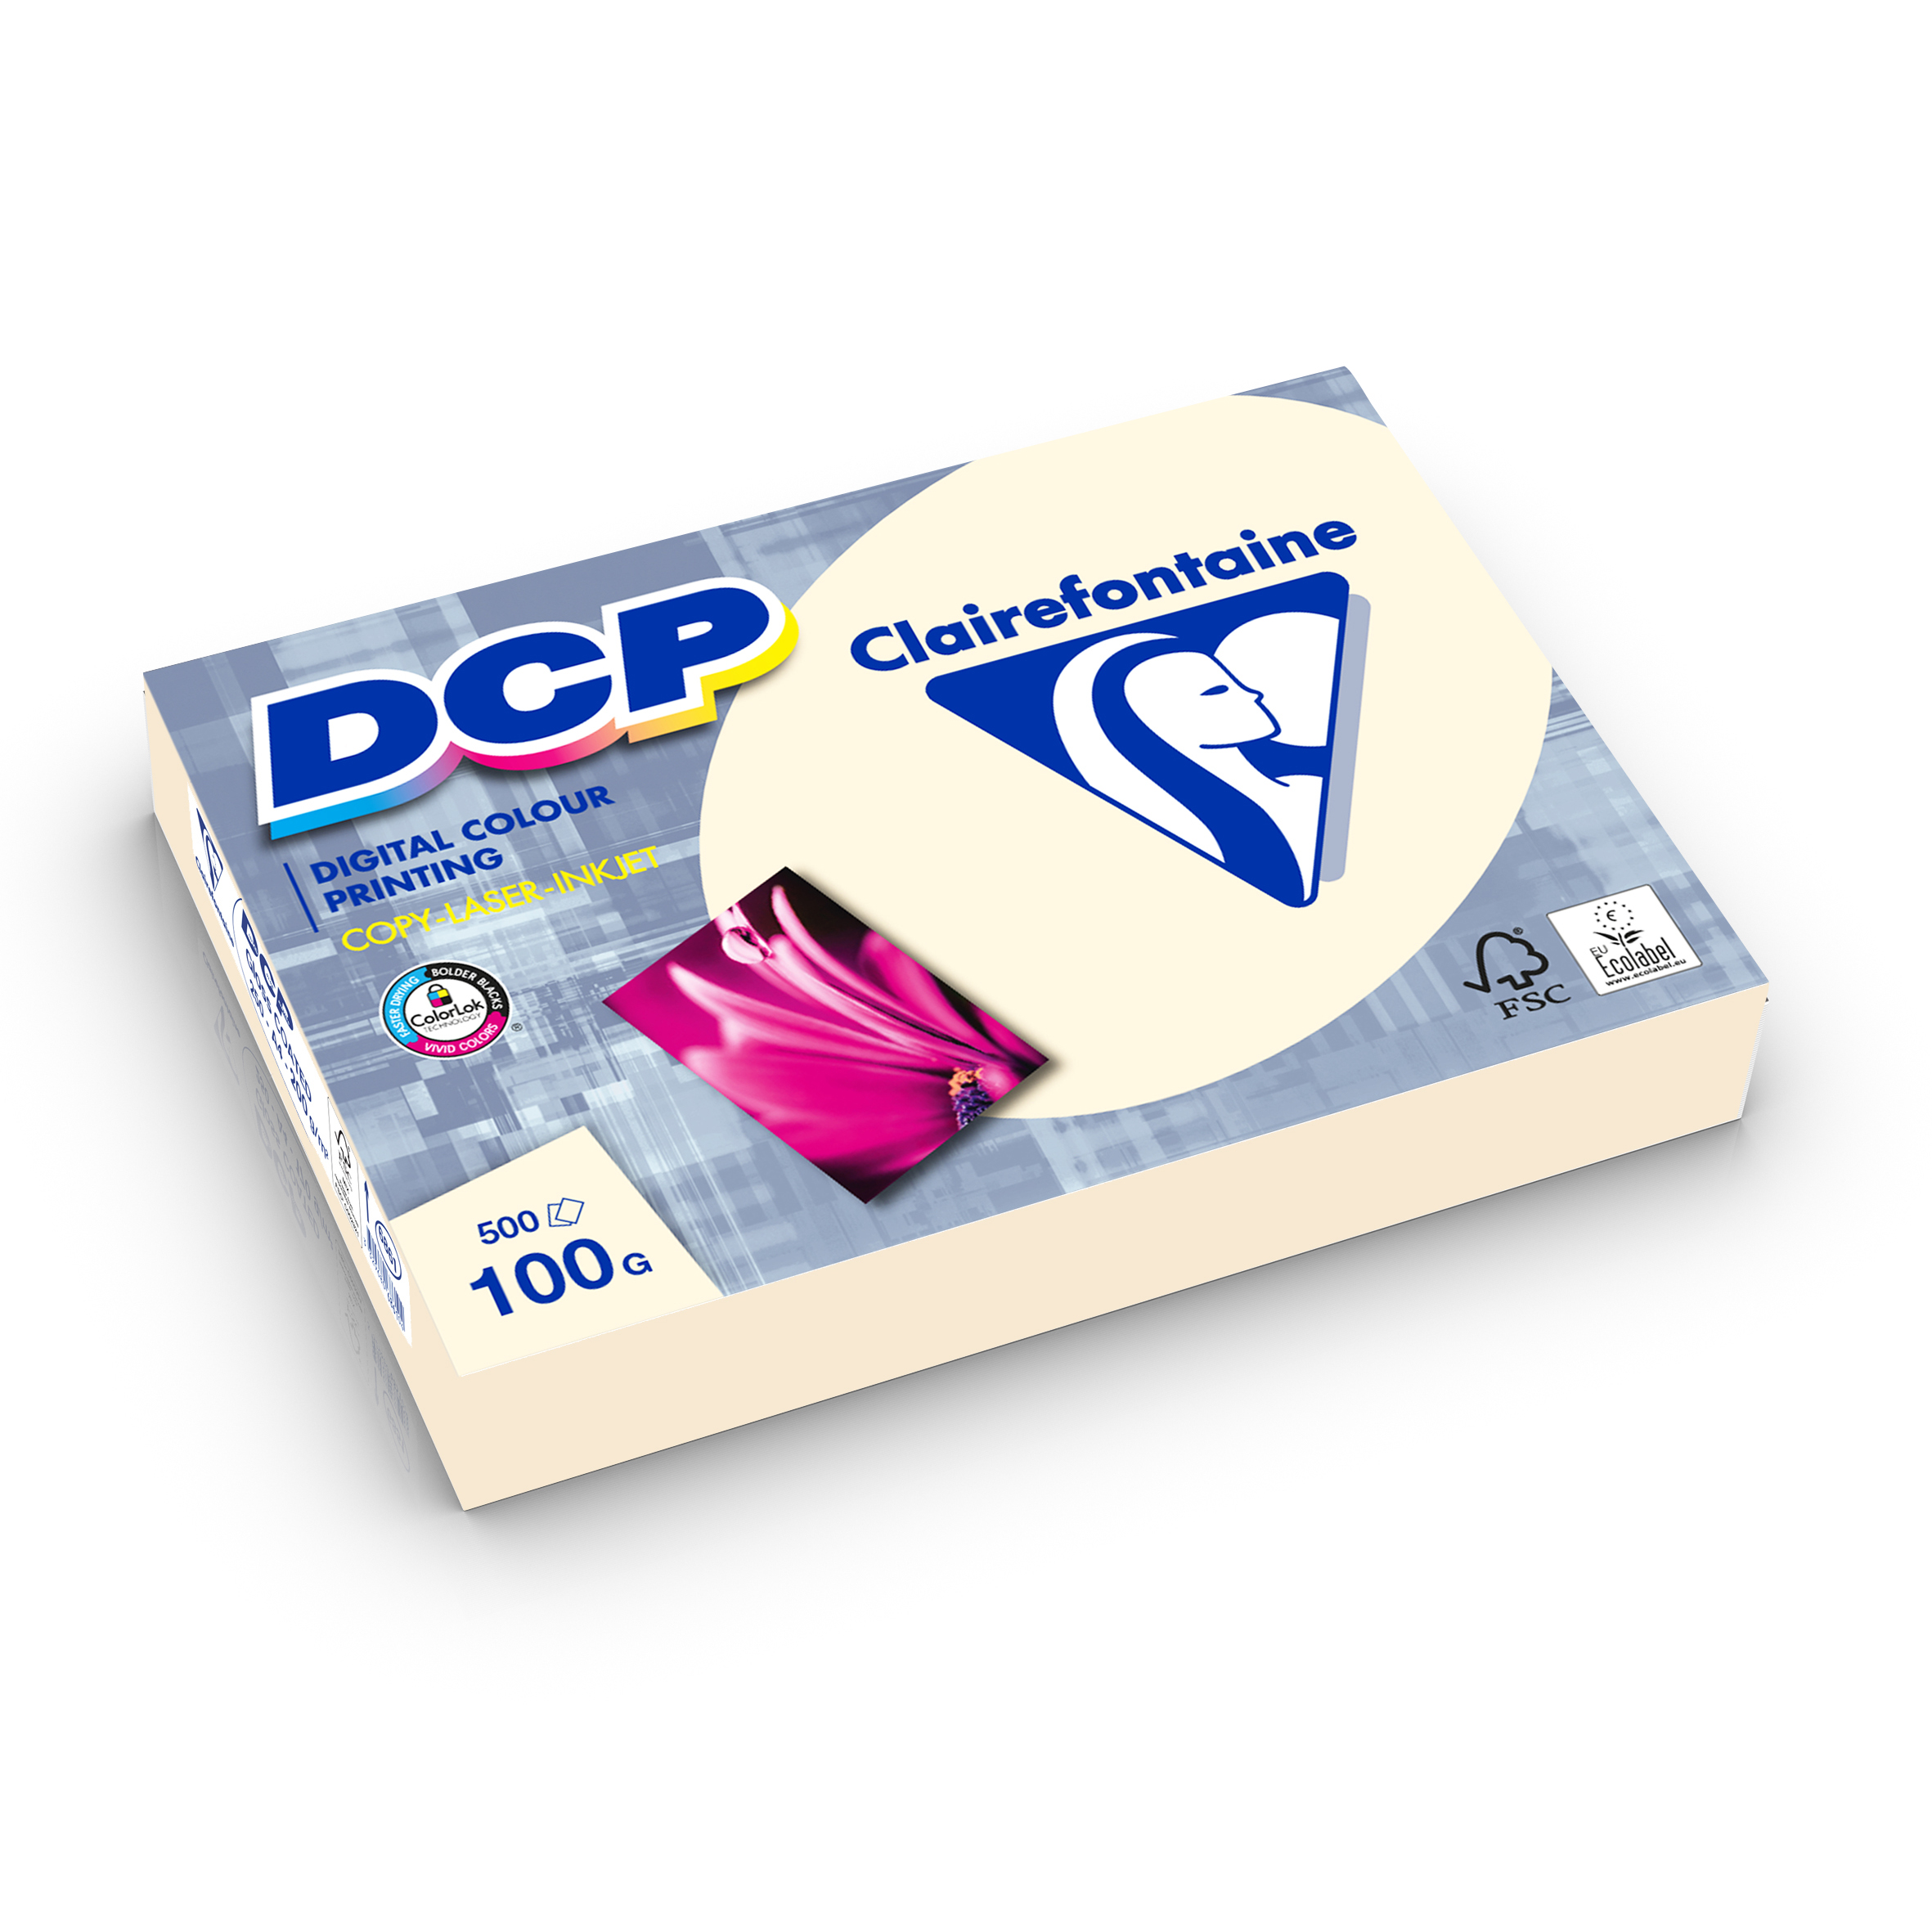 Clairefontaine DCP Ivory elfenbein digital color printing 100g/m² DIN-A4 500 Blatt 1861C